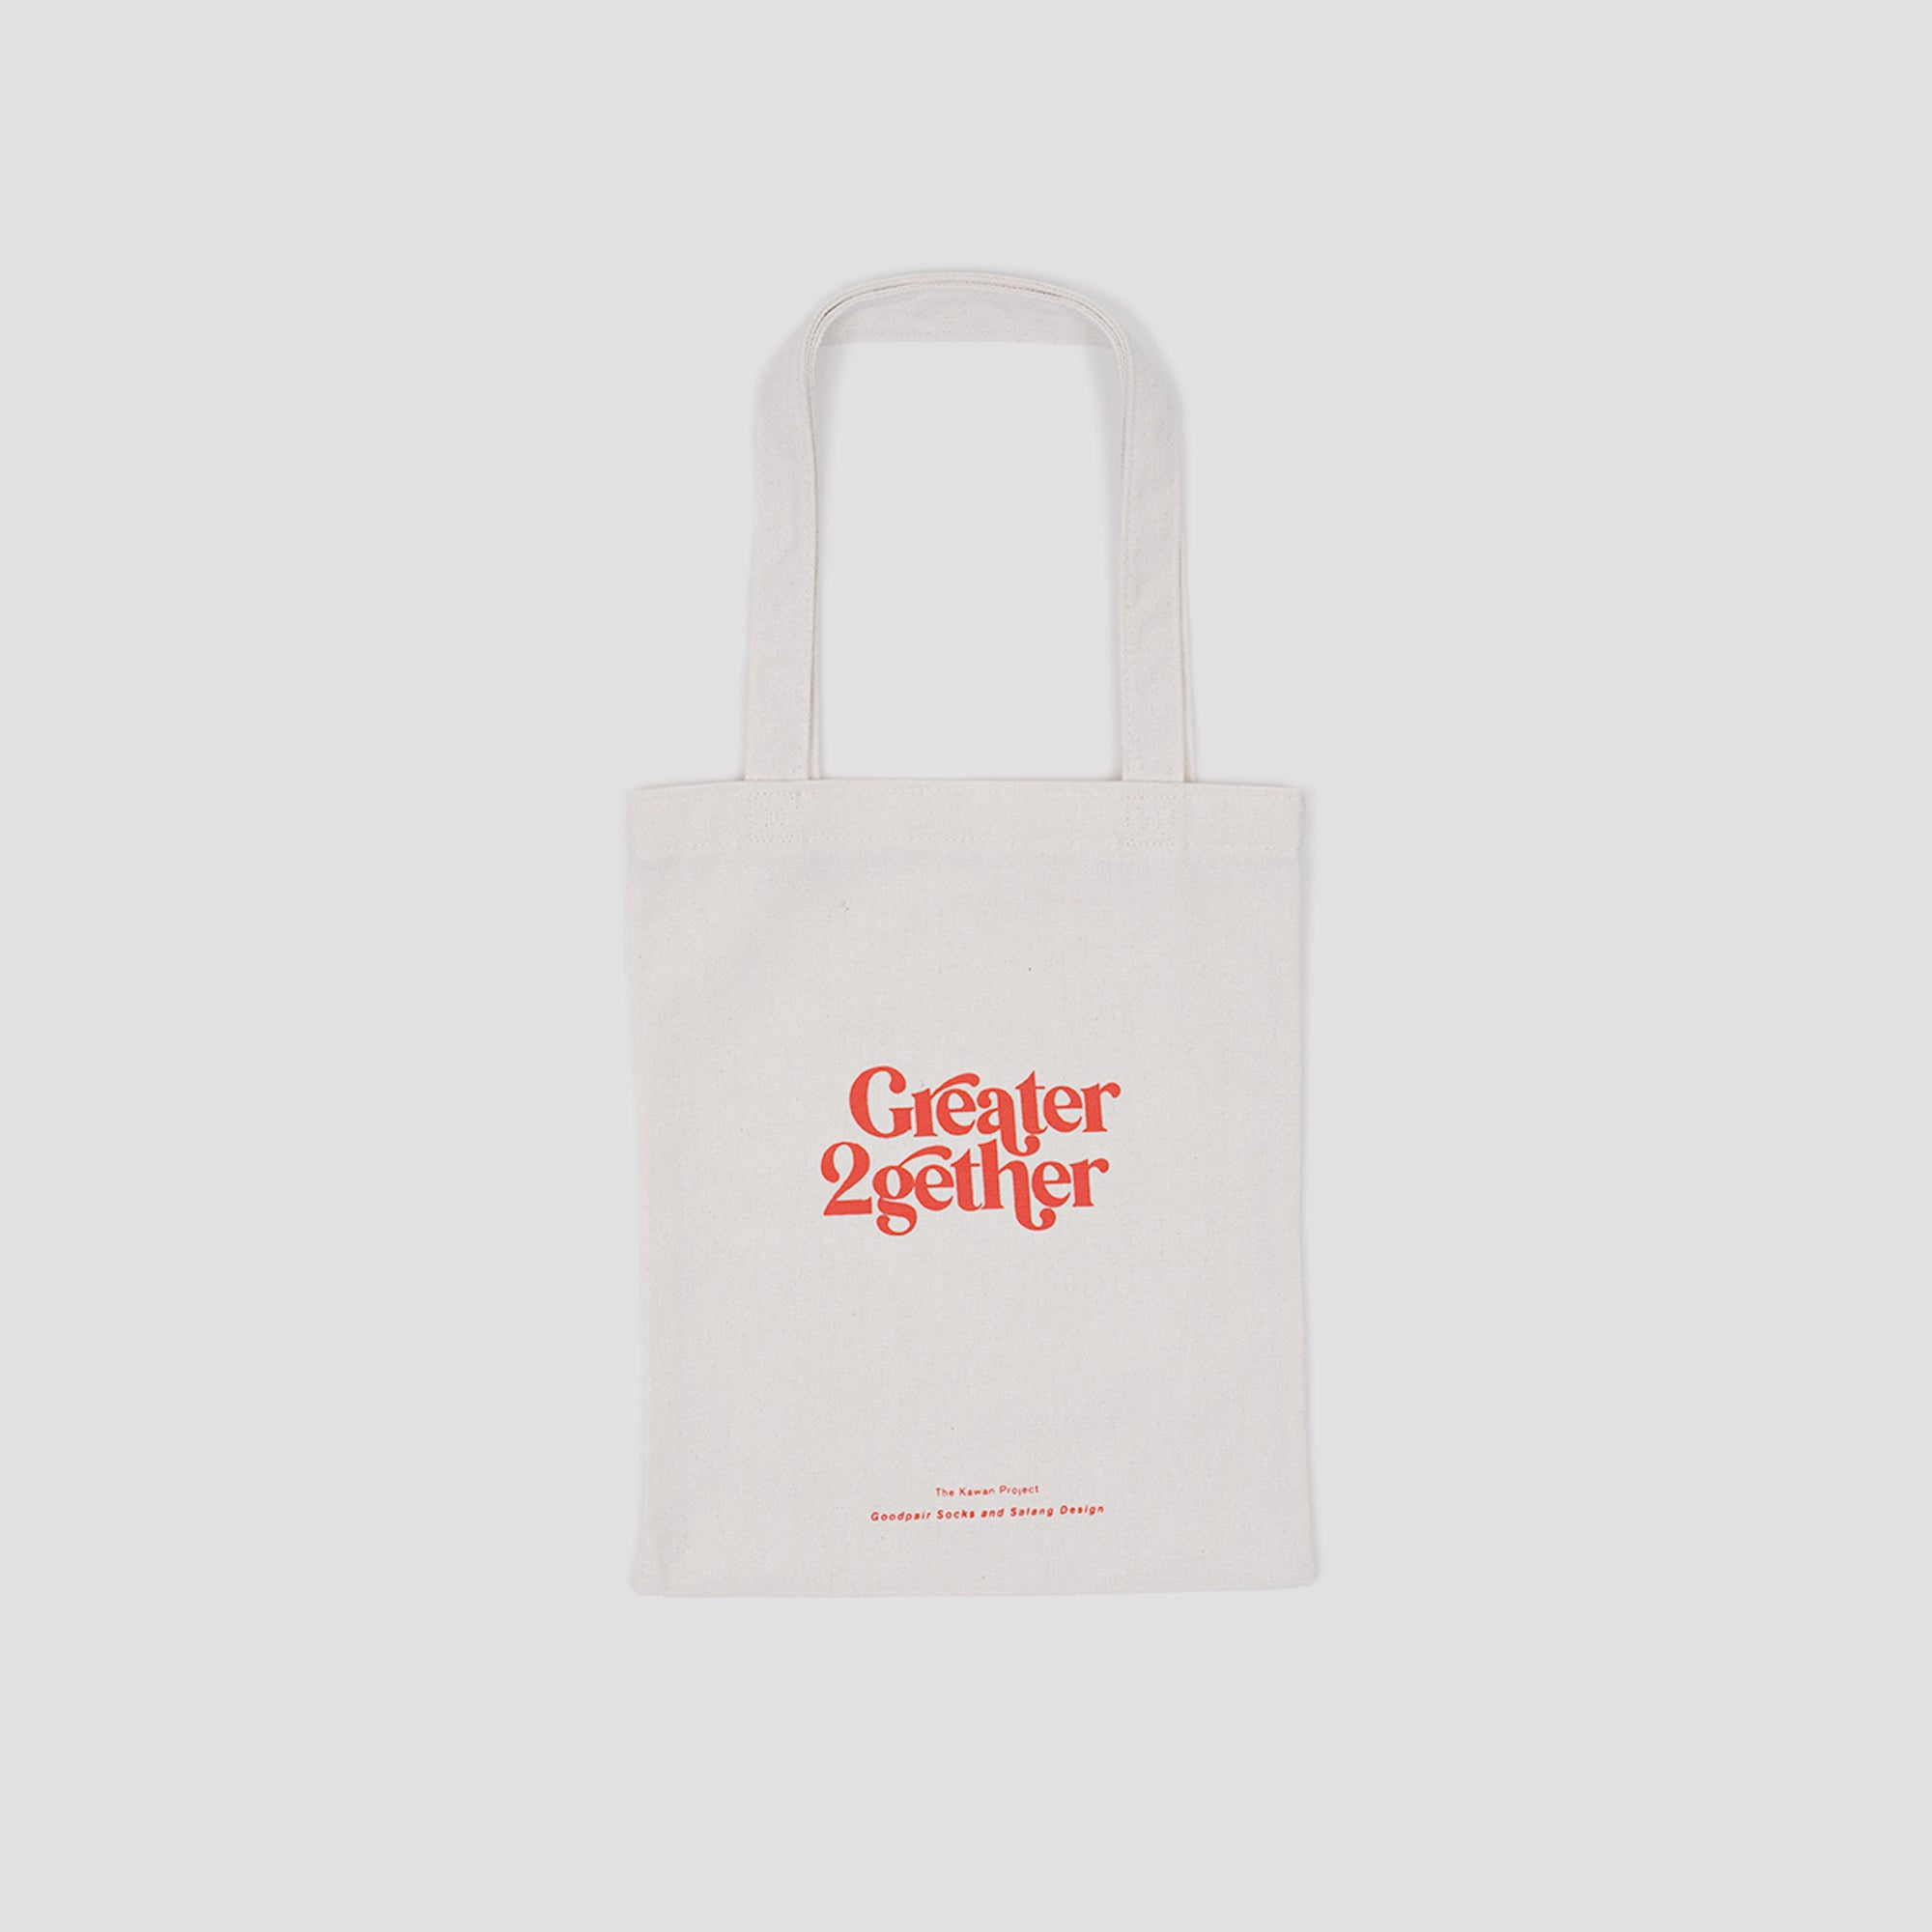 Greater 2gether - Tote Bag